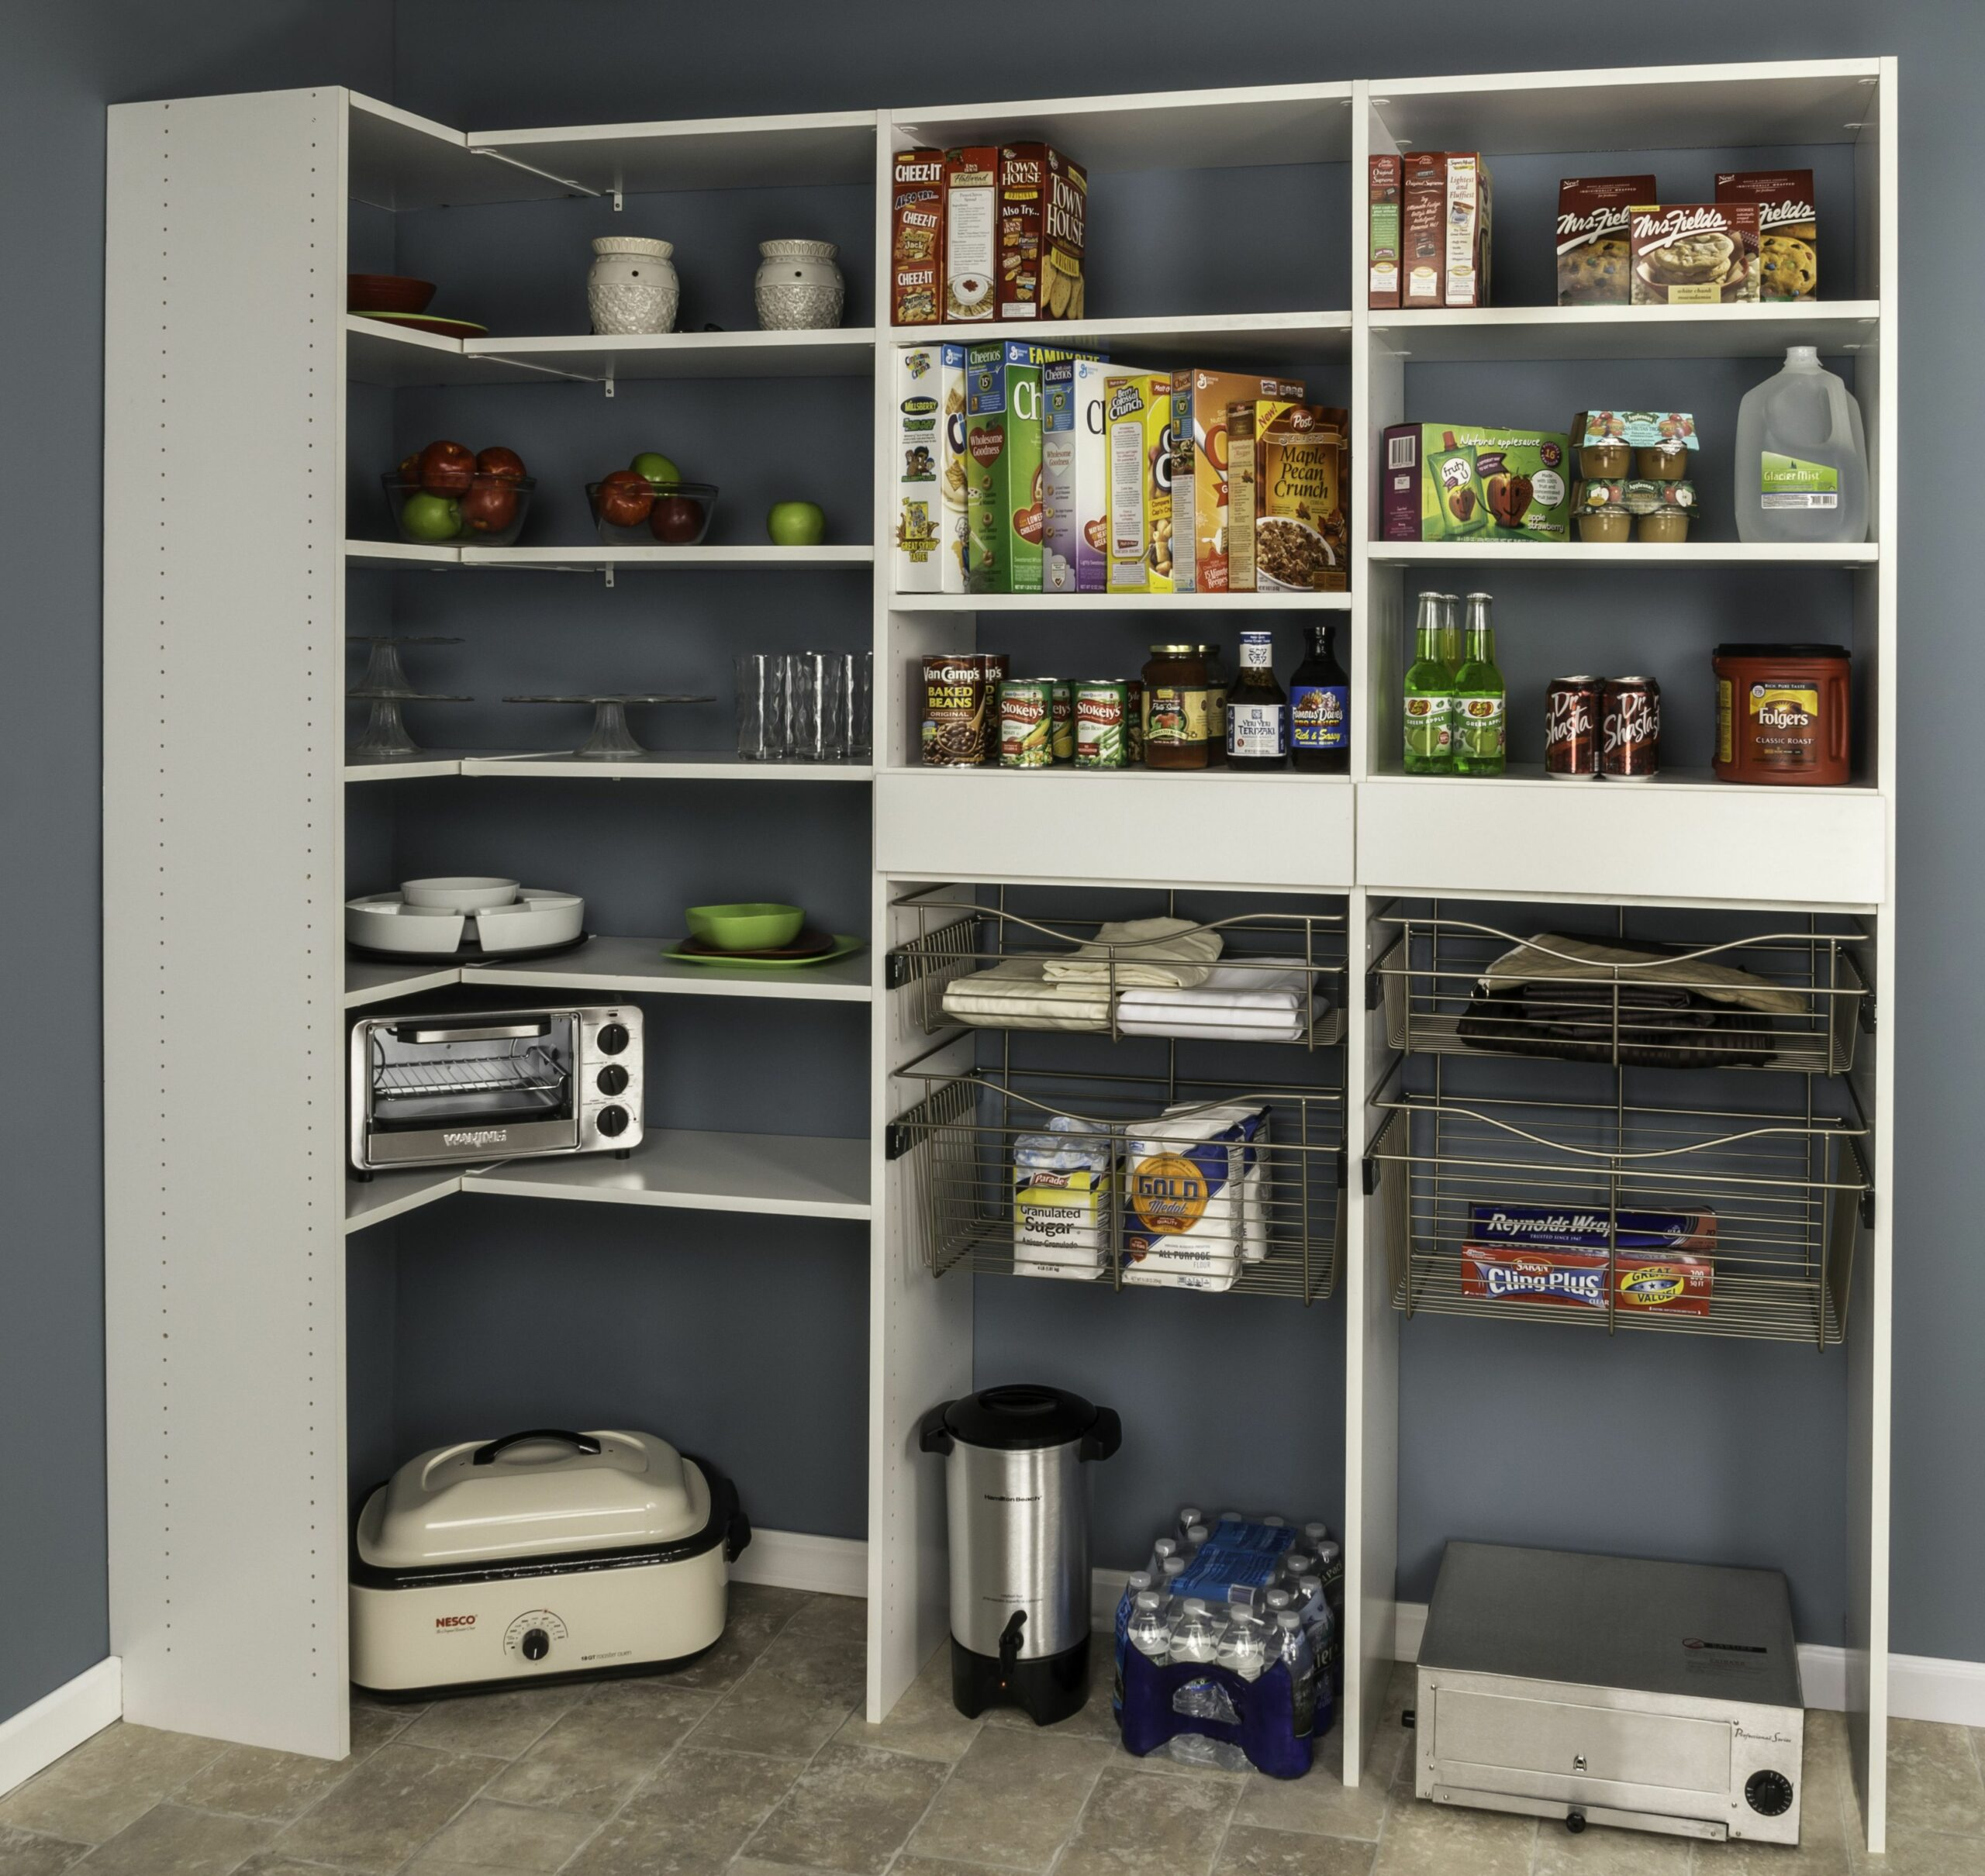 Dakota™ shelving offers thousands of shelving possibilities. This ..